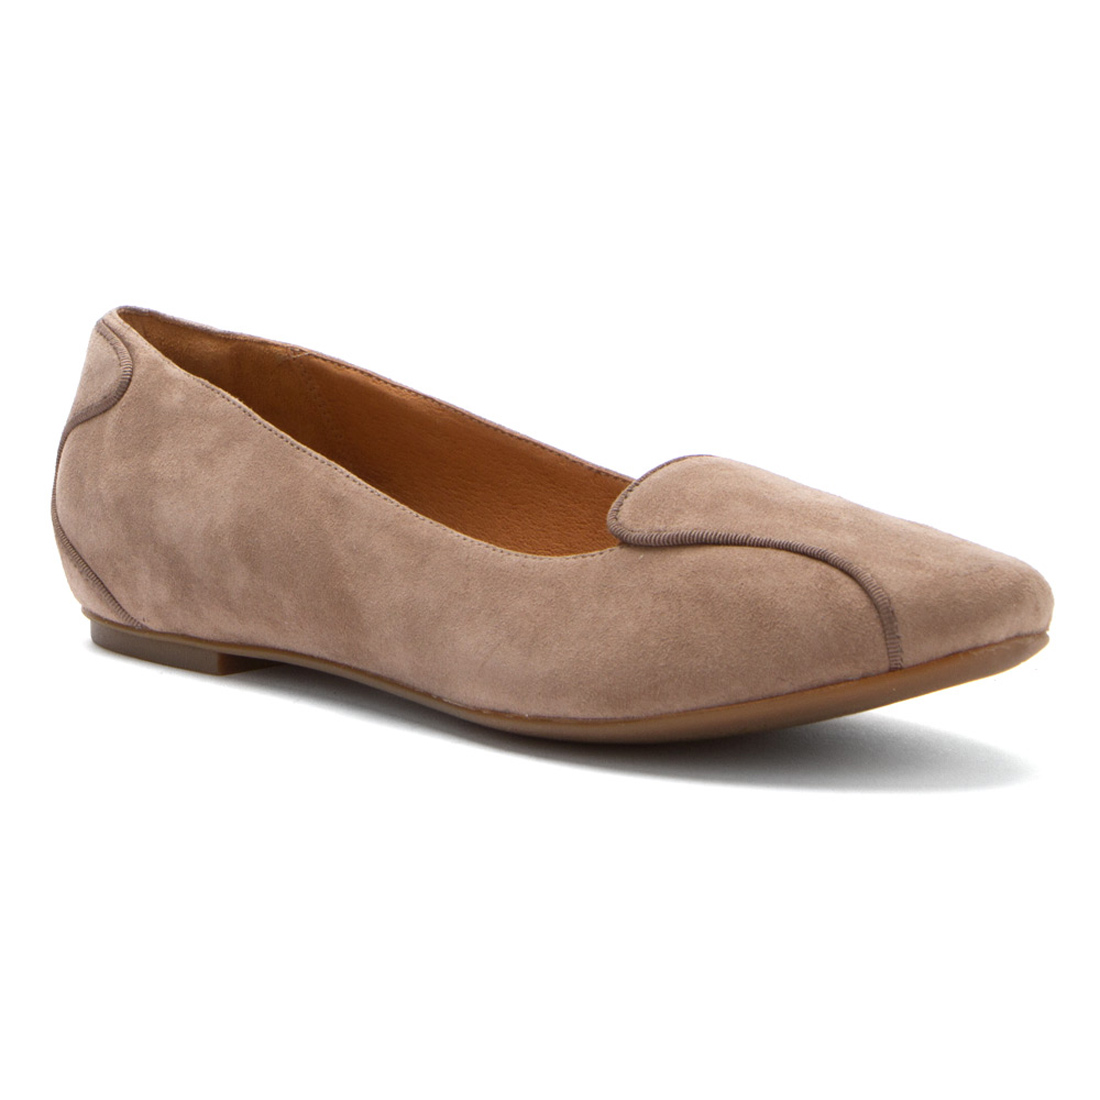 Indigo By Clarks Women's Valley Relax Flats Mushroom - Shop now @ Shoolu.com